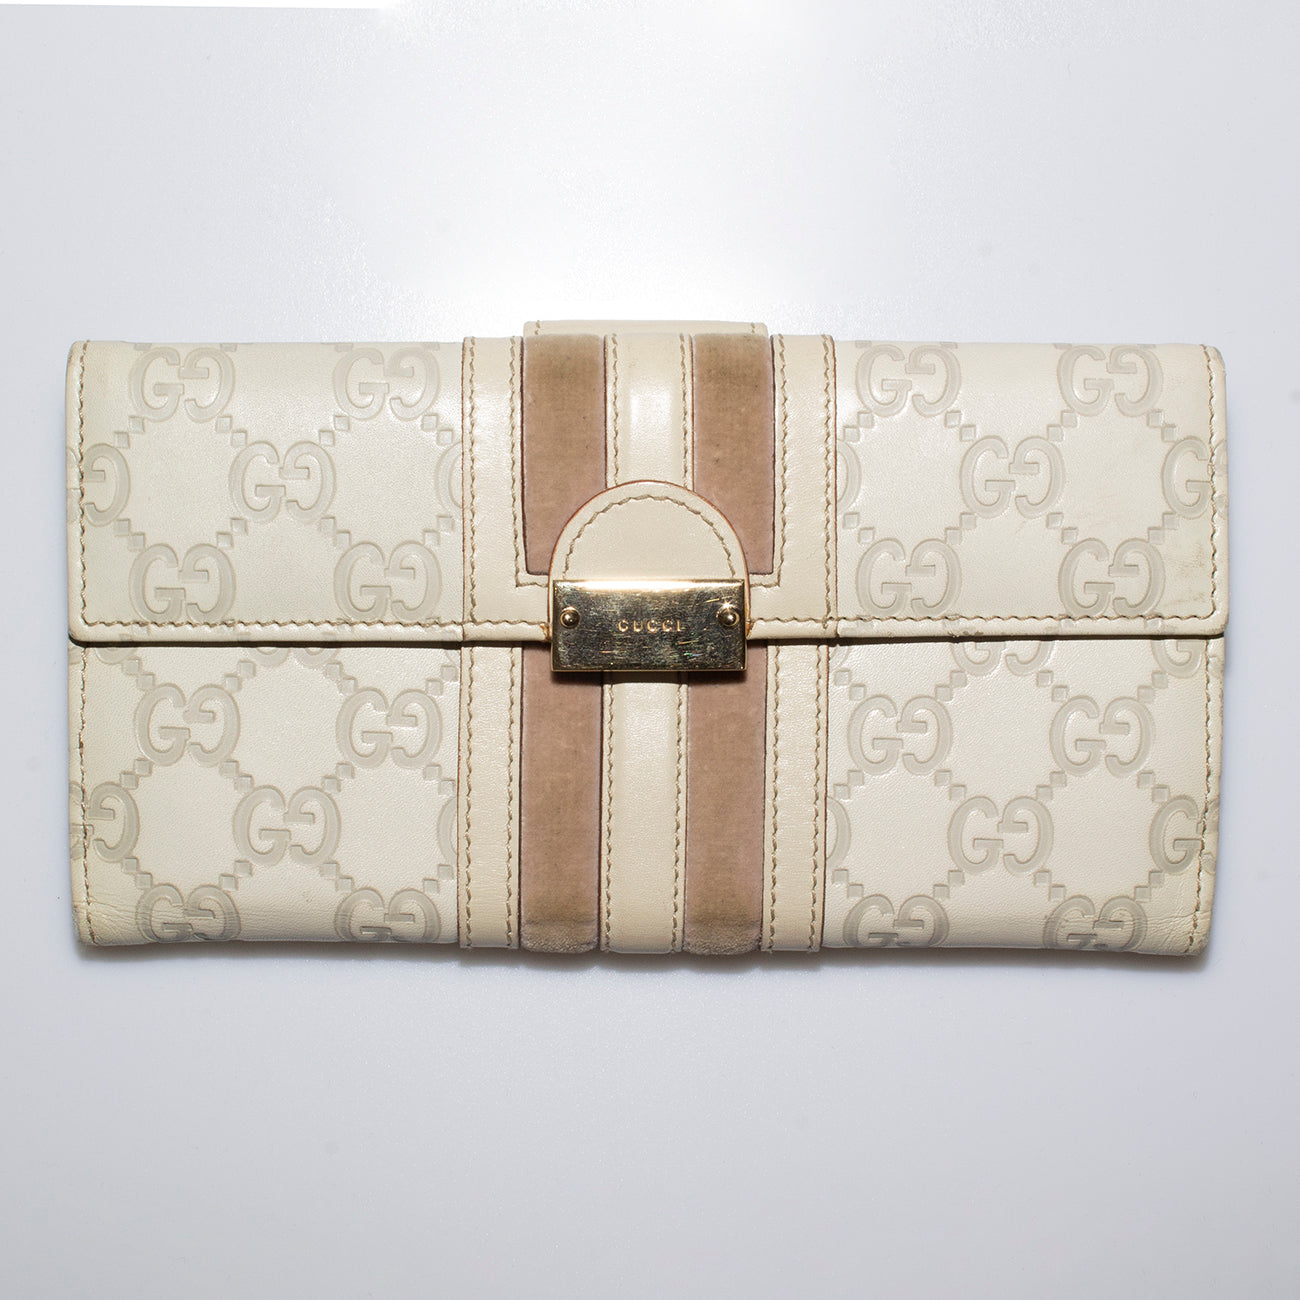 GG Monogram Leather Embossed Wallet